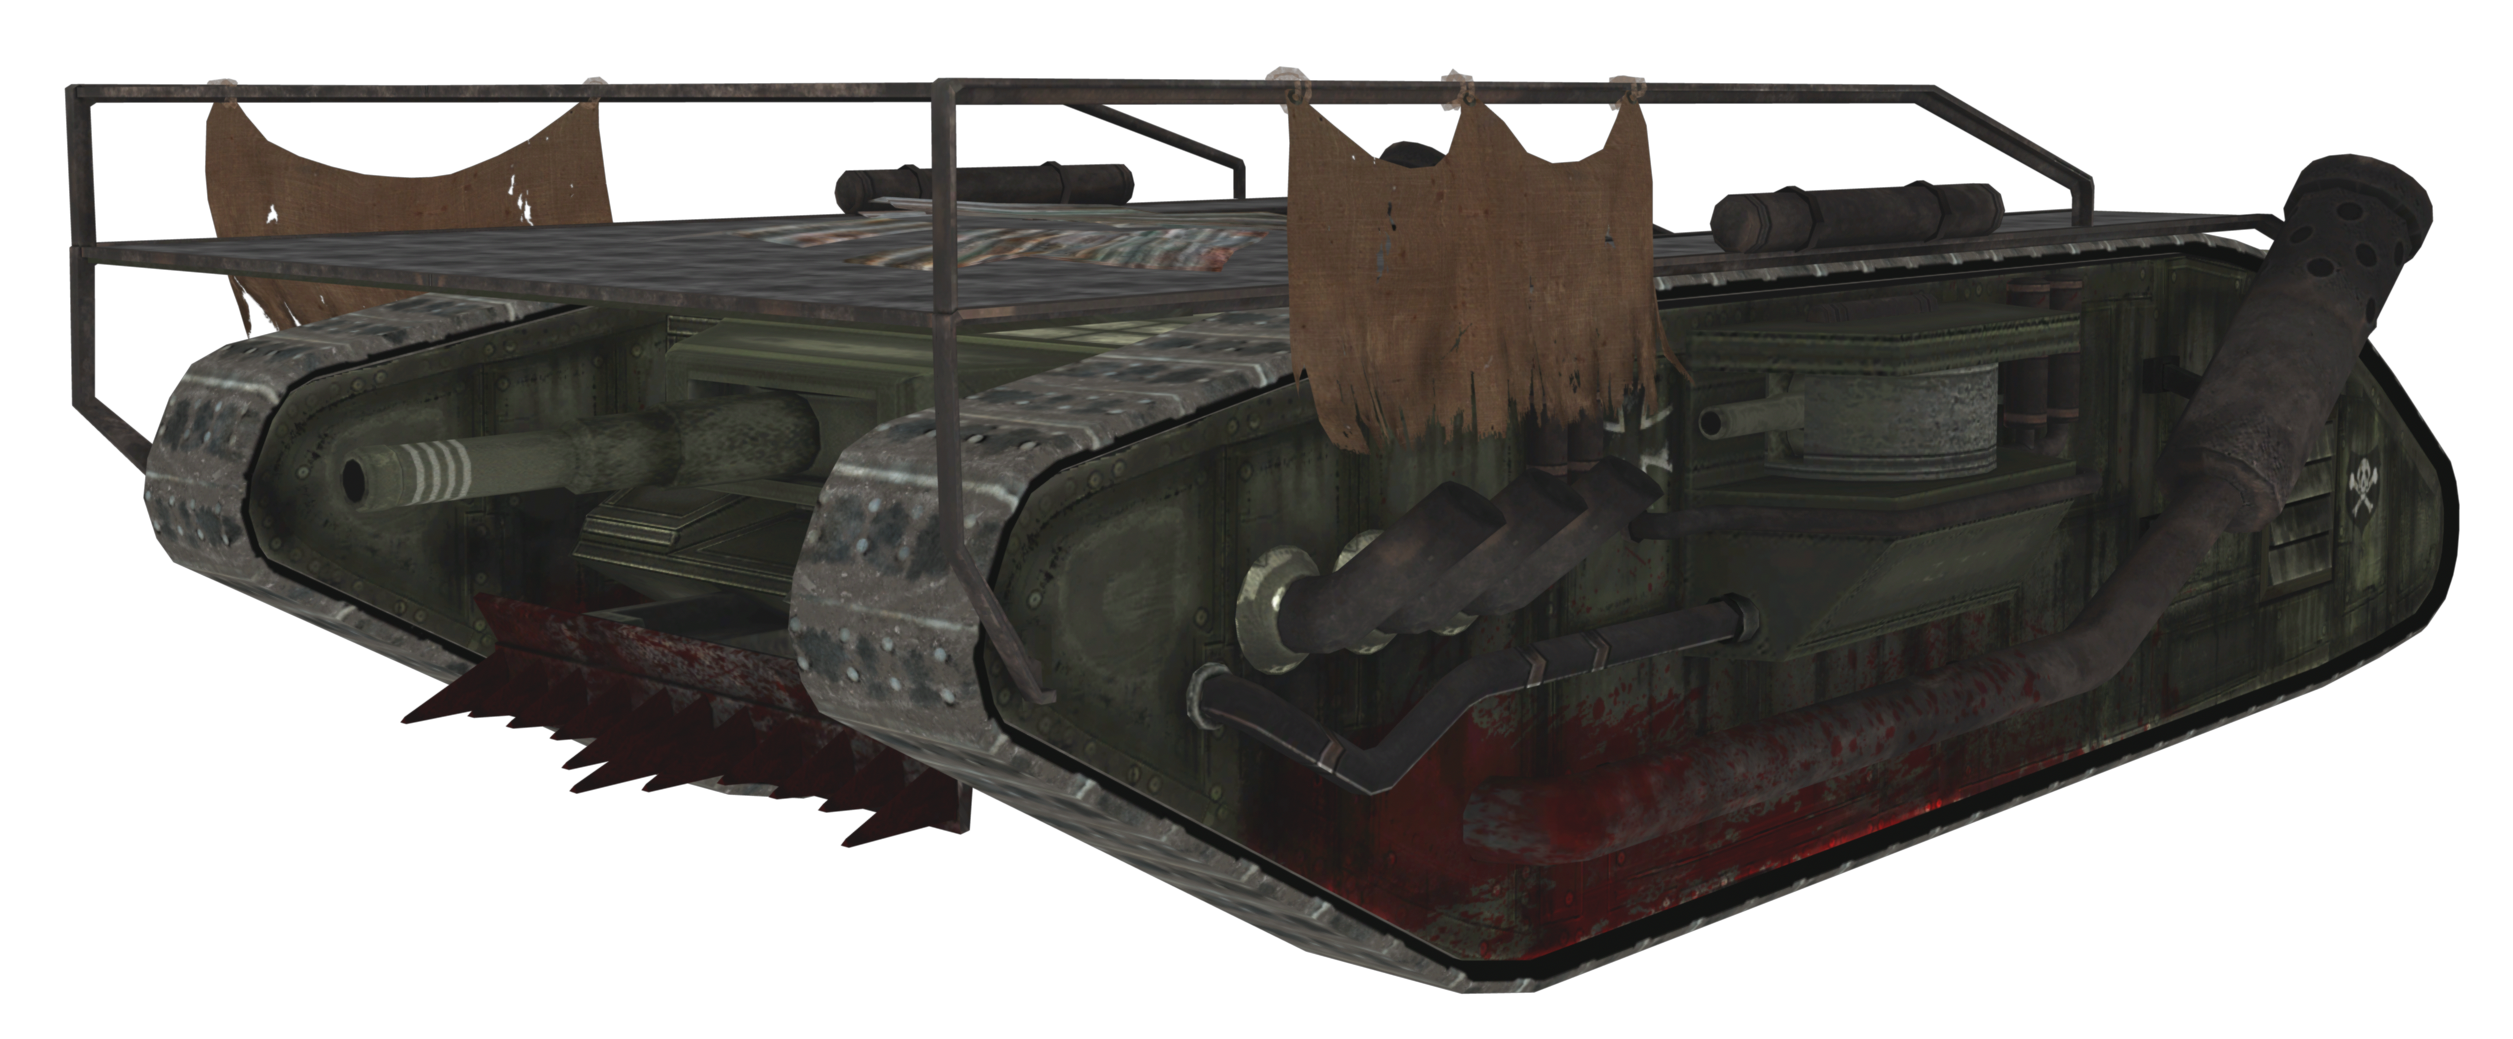 call of duty black ops 2 buried map pack with Mark Iv Tank on Call Of Duty Black Ops Ii Vengeance Review Die Hard 3866881 besides Watch in addition Call Of Duty Black Ops 2 Zombie Maps also 16 Hd Call Of Duty Zombies Wallpapers additionally Watch.